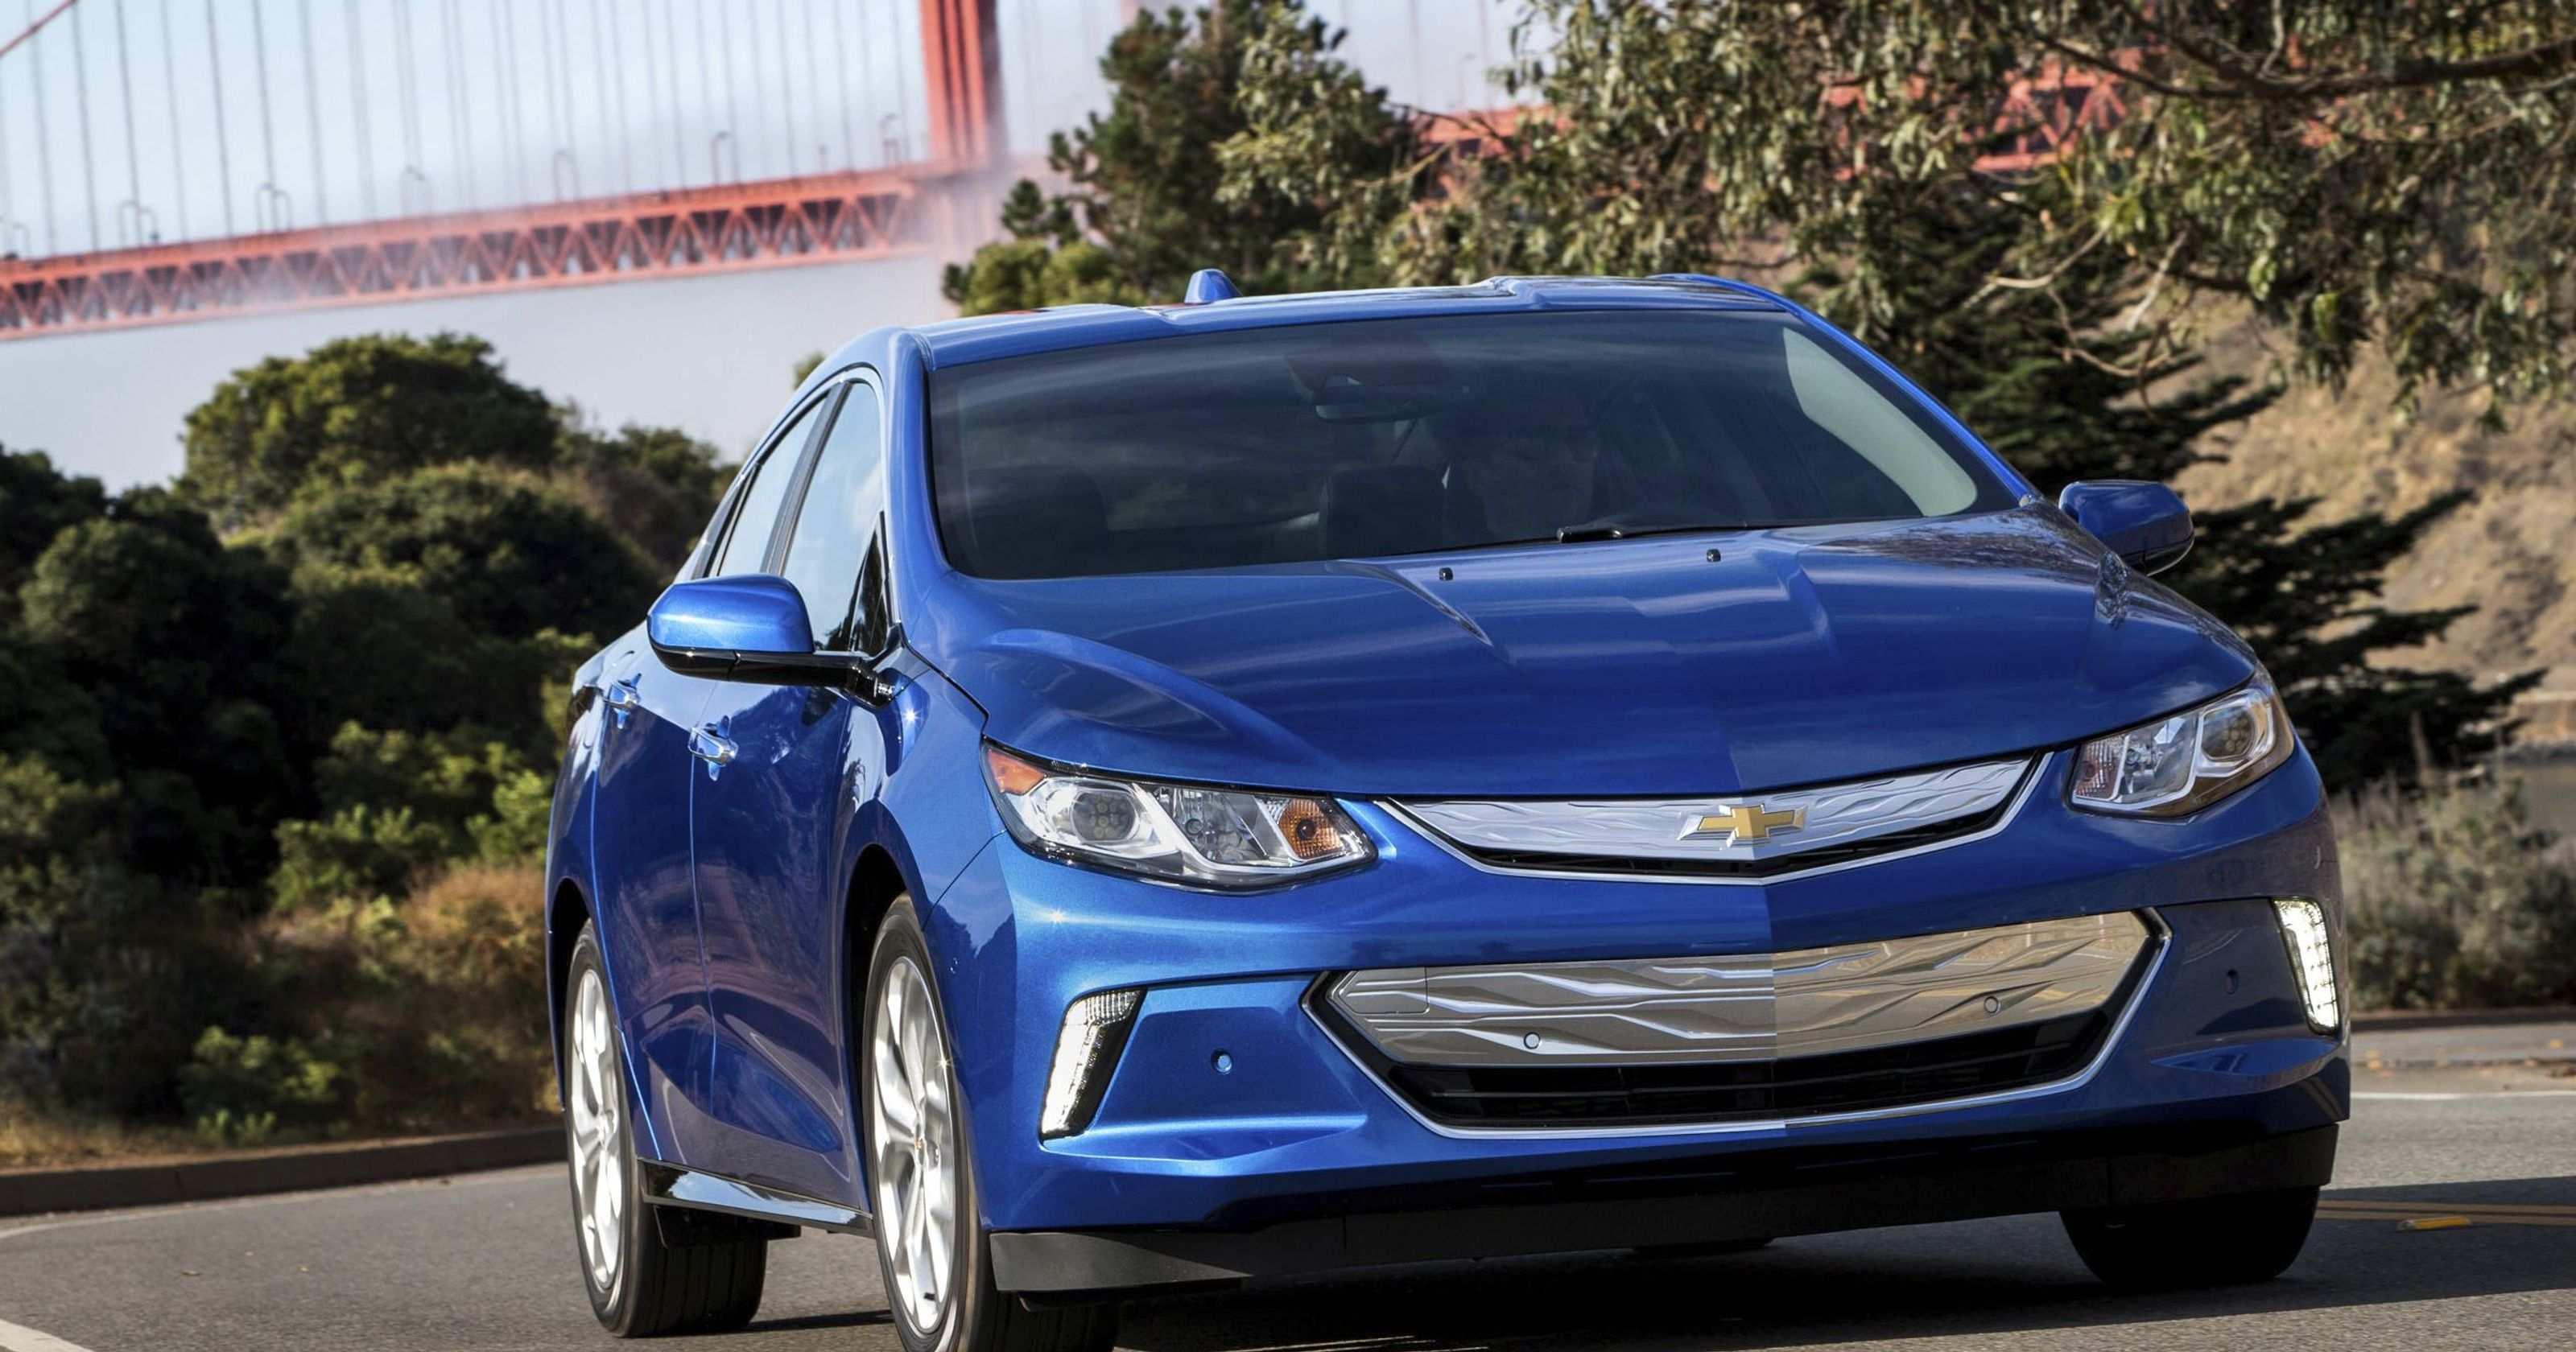 18 All New Best Chevrolet 2019 Volt Concept Speed Test with Best Chevrolet 2019 Volt Concept